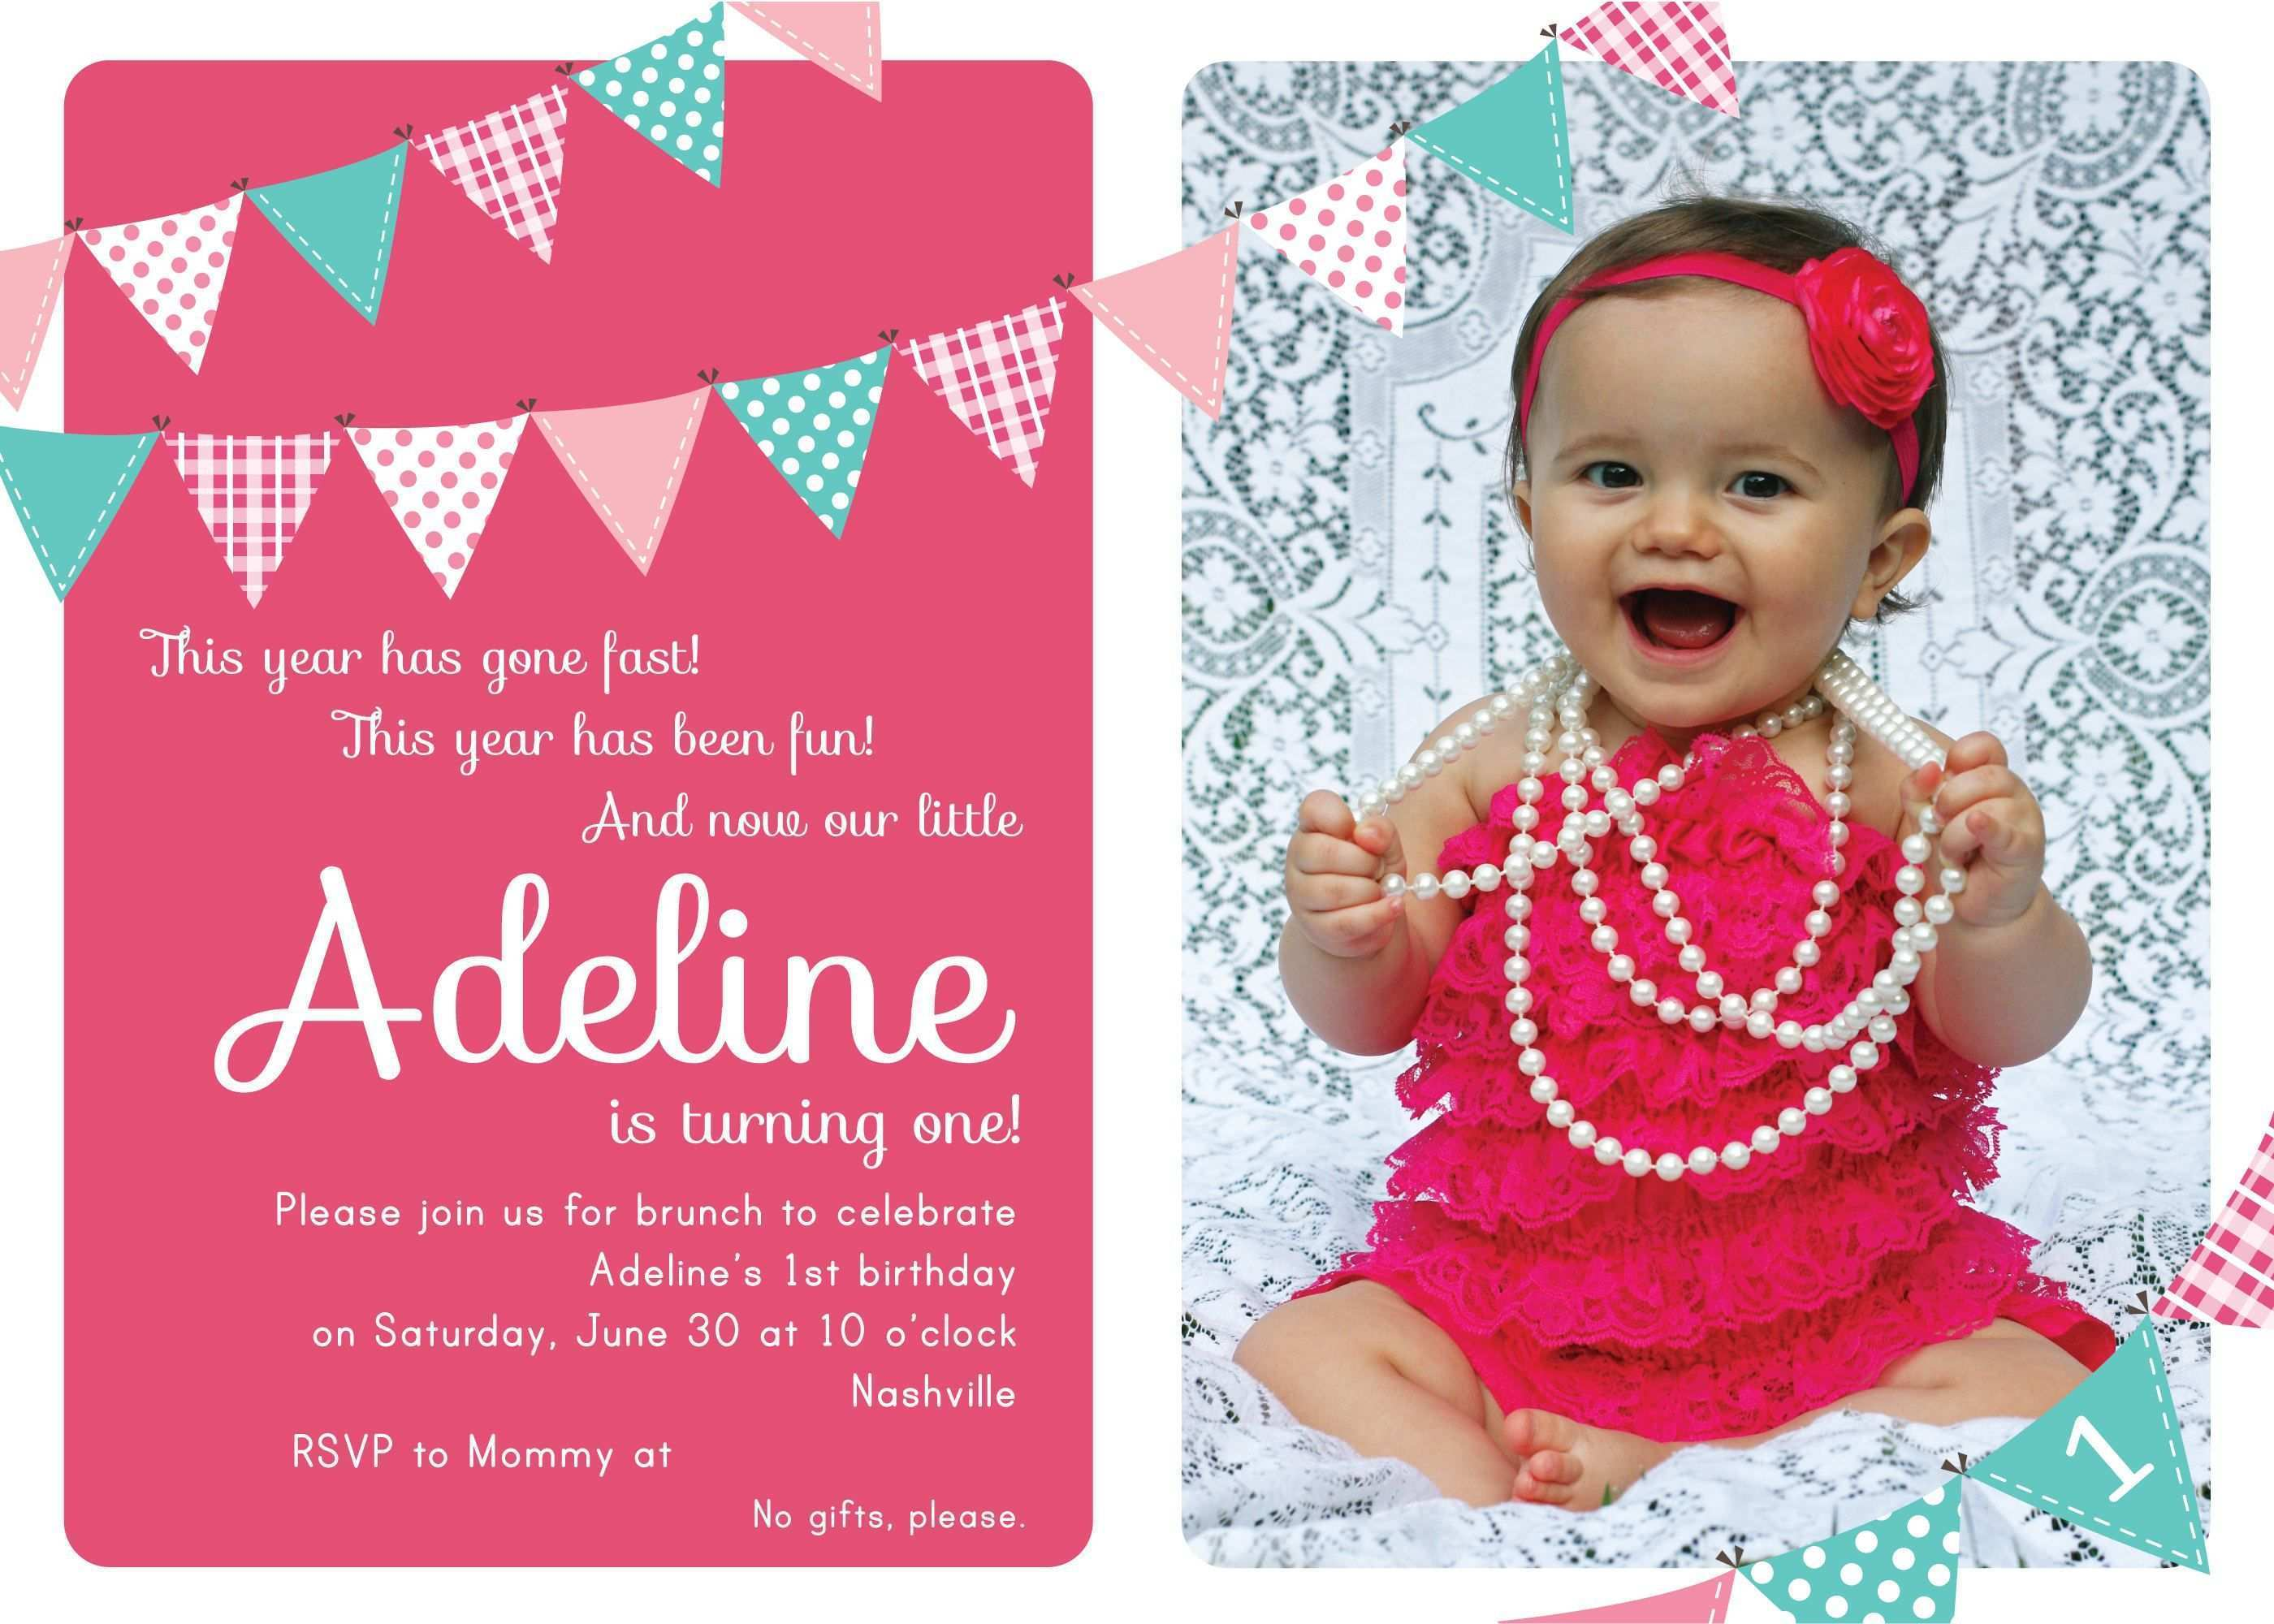 25 The Best 1 Year Old Birthday Card Templates With Stunning Design by 1 Year Old Birthday Card Templates